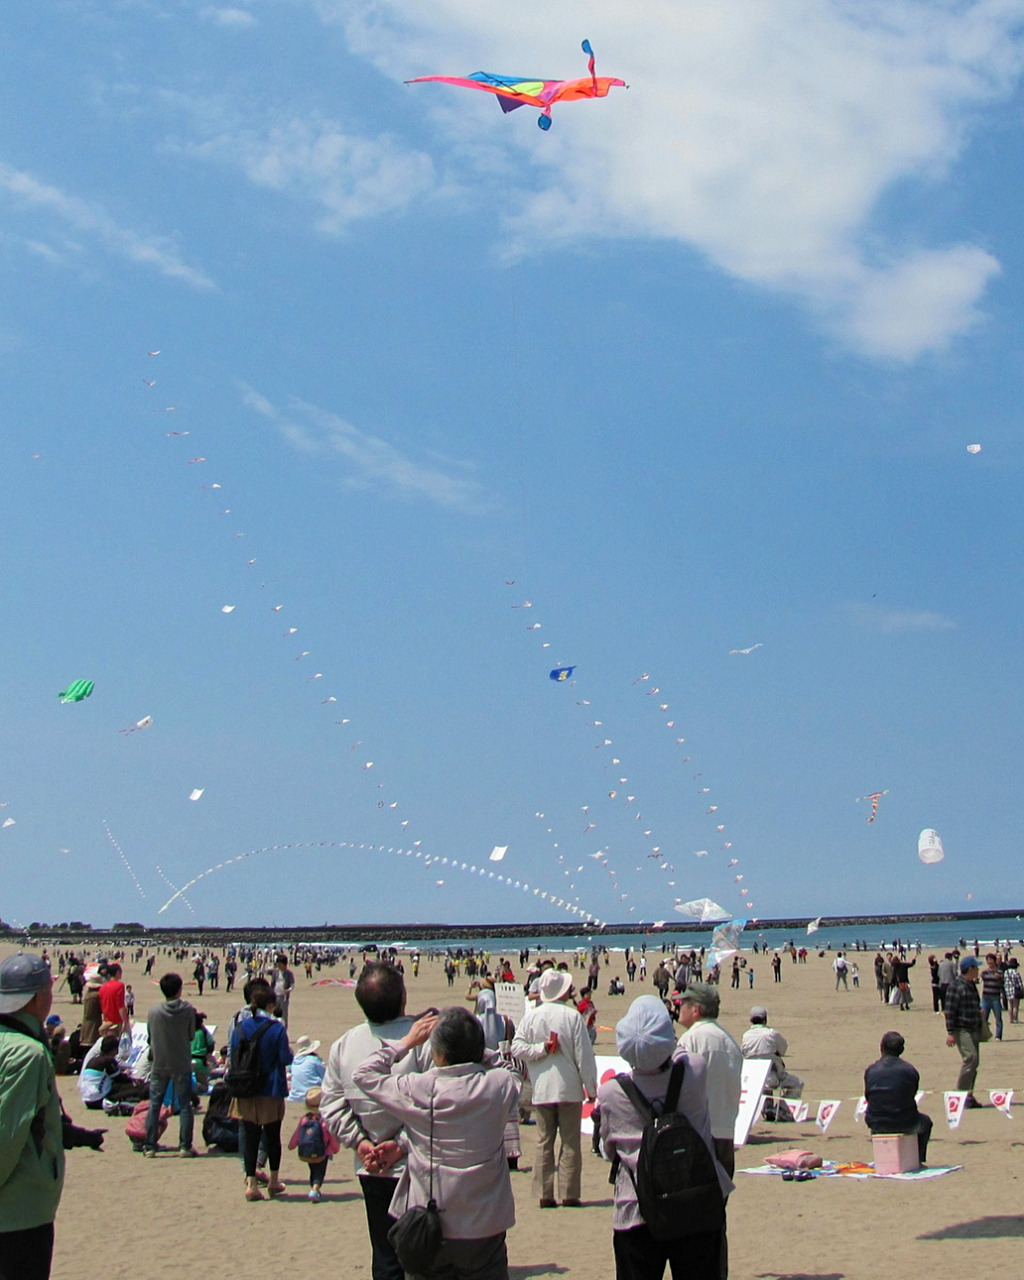 Uchinada Kite Festival, by rlquinn1980 on Flickr